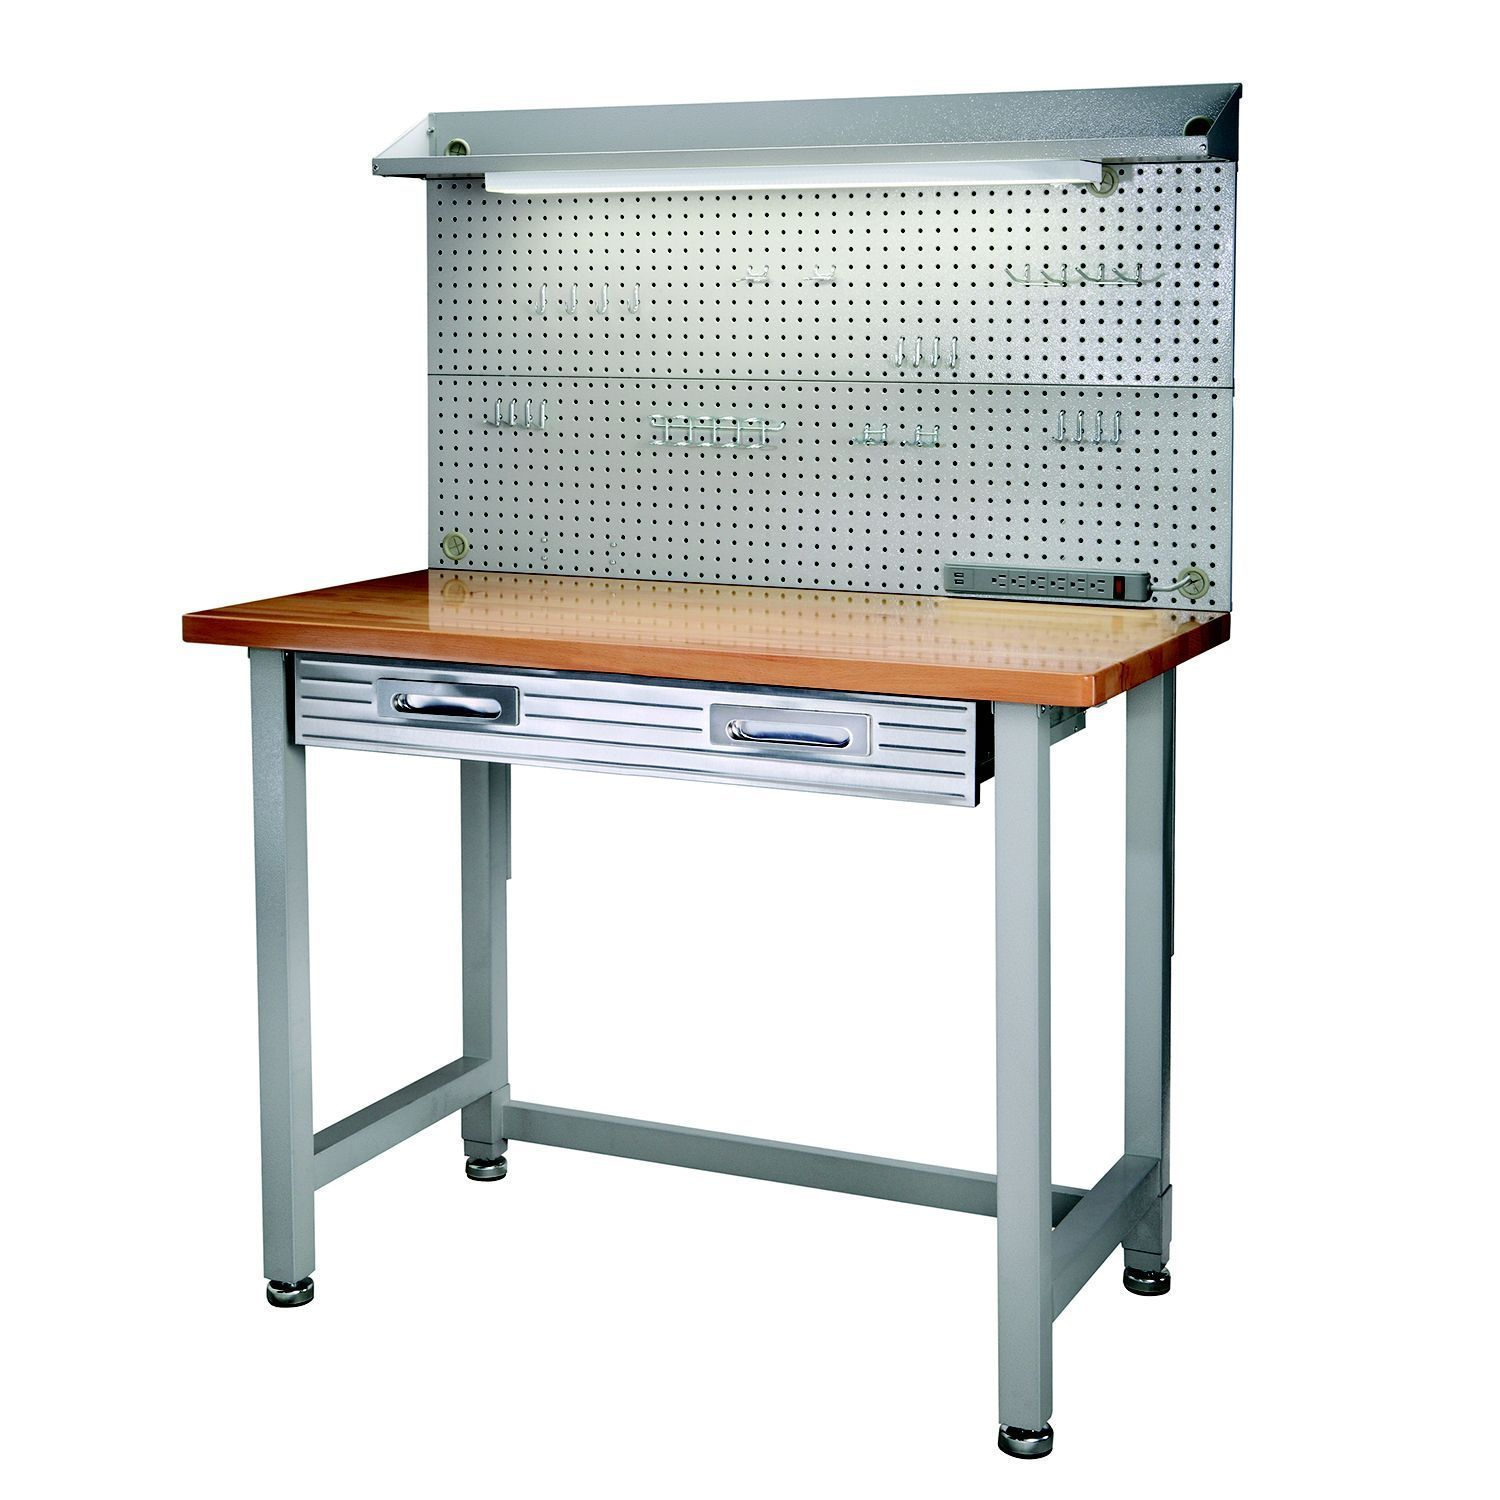 Reloading Benches for Workspace Room Furniture Design: Reloader Bench | Reloading Benches | Custom Reloading Bench